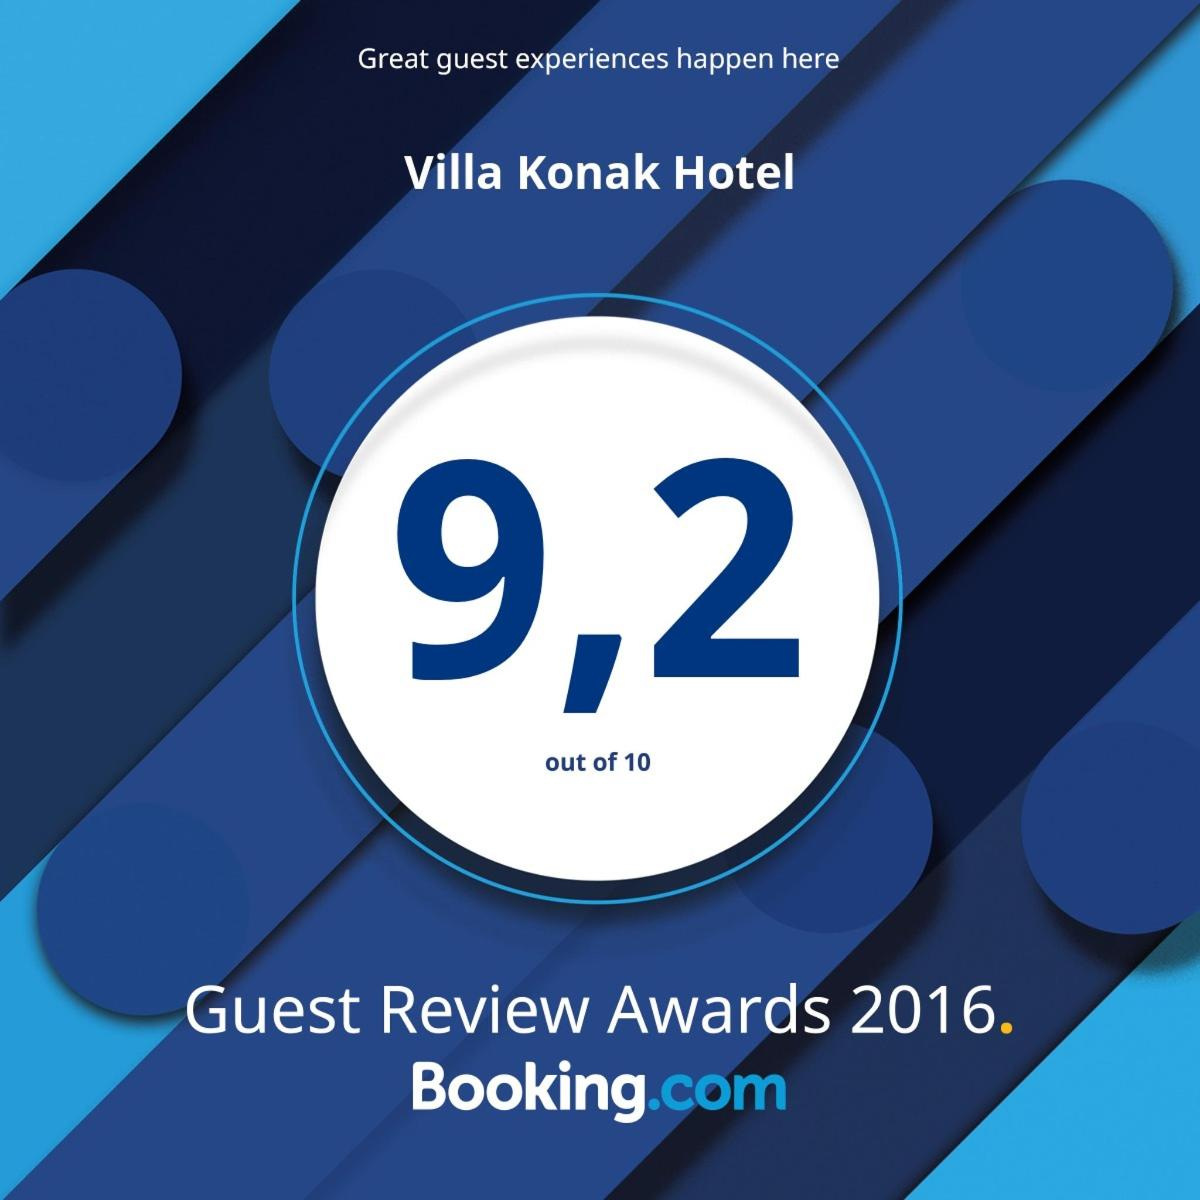 Guest Review Awards 2016 - Booking.com